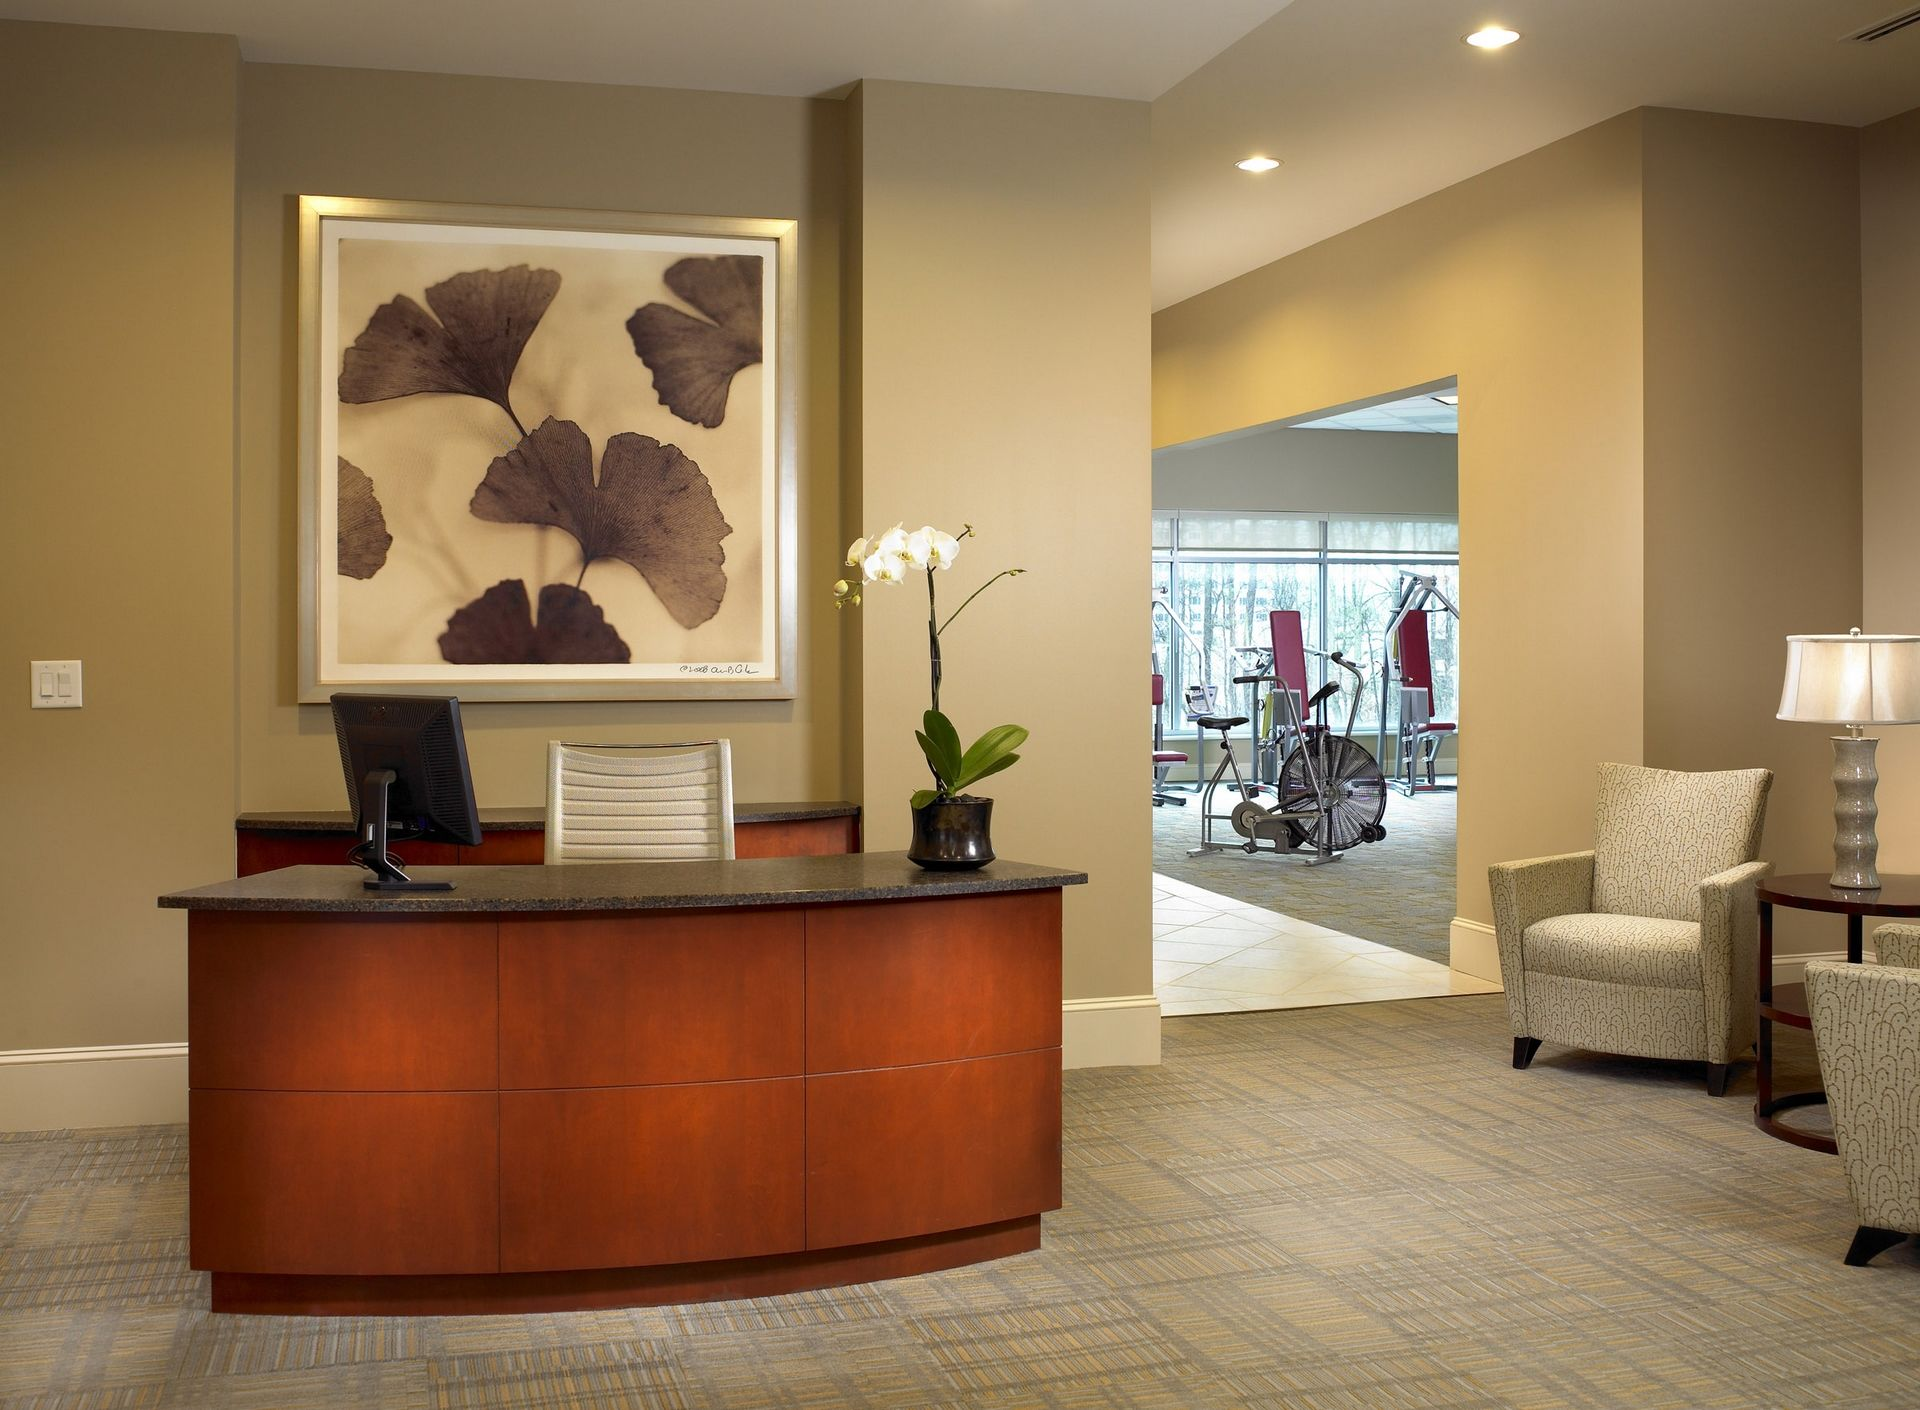 Lenbrook THW Senior Living Design CCRC Fitness Wellness Interior Design